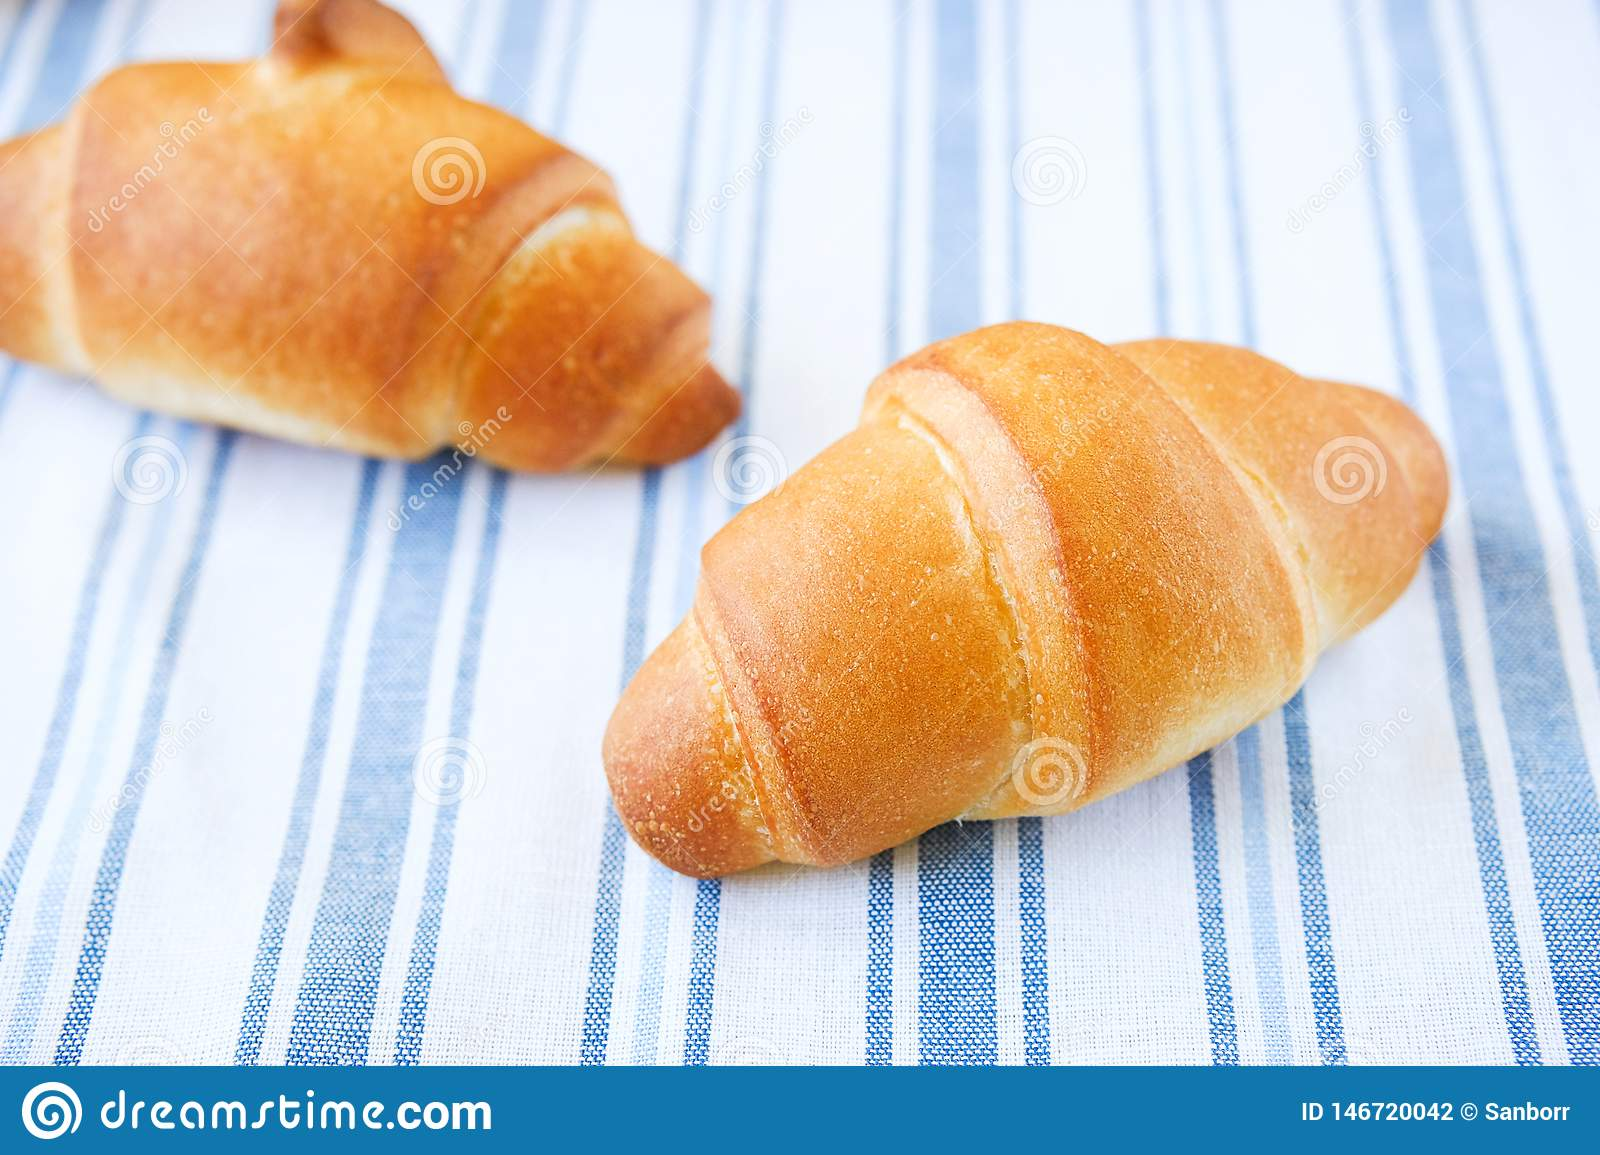 Fresh croissants on a striped linen towel. Freshly baked bakery products close-up. The concept of organic, farm food. The view